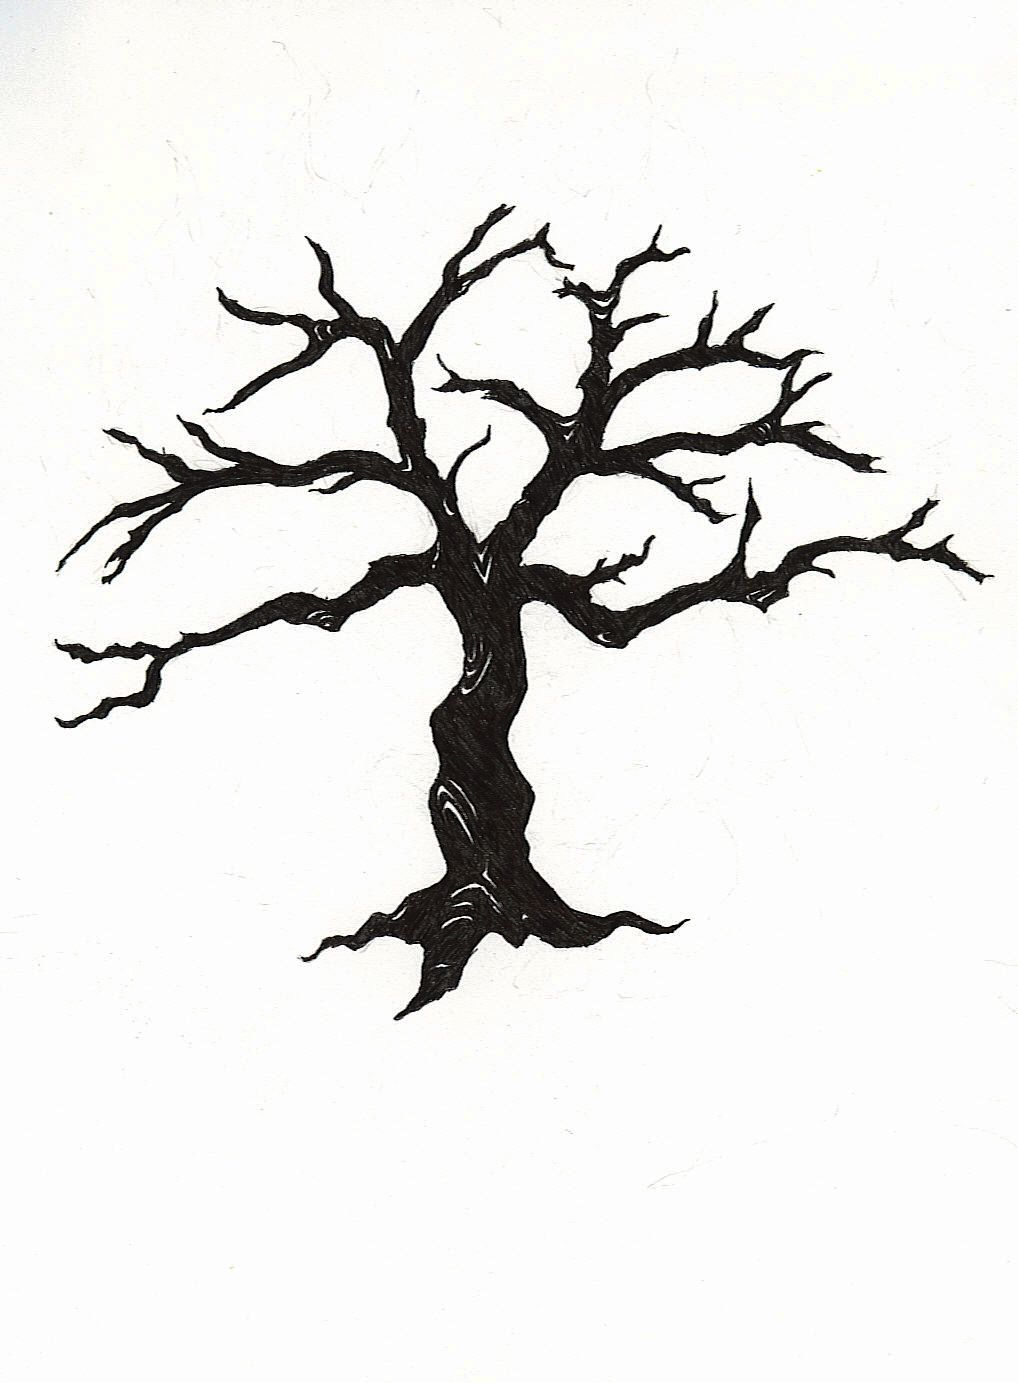 Winter tree canopy clipart picture freeuse stock dead tree clipart - ClipartFest | Paper Cutting Flora | Dead tree ... picture freeuse stock